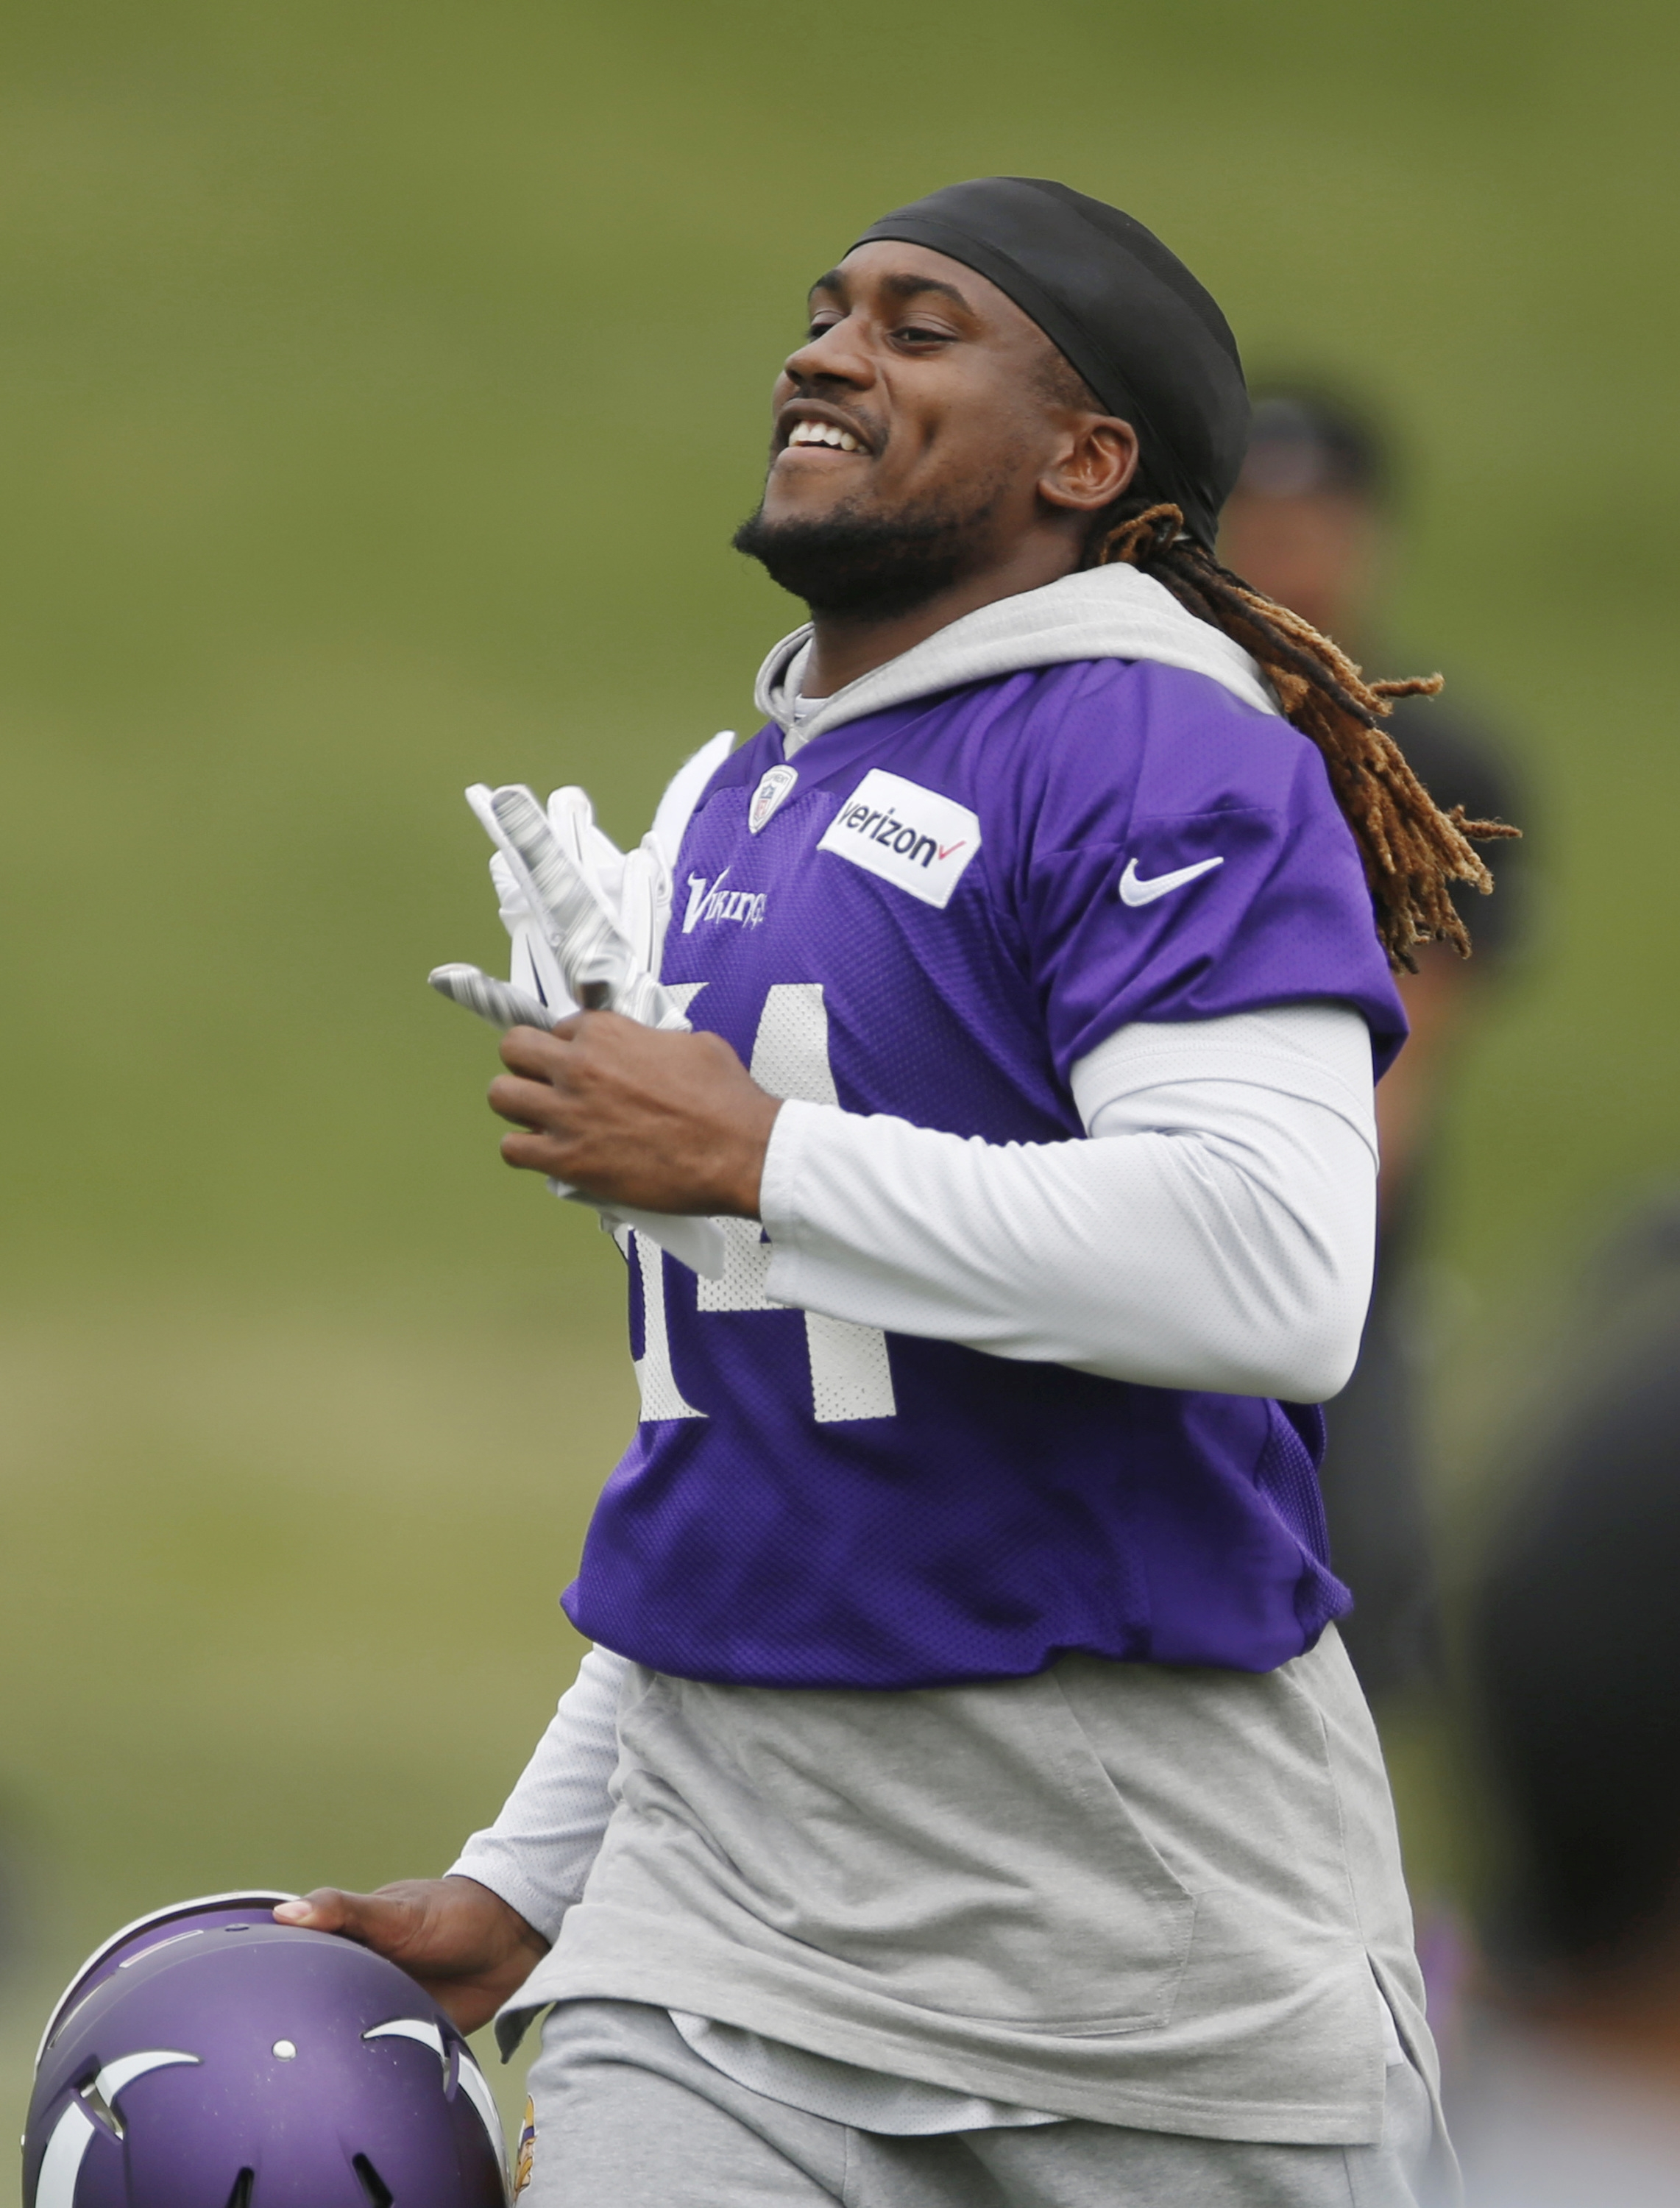 Minnesota Vikings wide receiver Cordarrelle Patterson runs to drills after calisthenics during the NFL football team's minicamp Tuesday, June 14, 2016, in Eden Prairie, Minn. The fifth-year option on his contract declined by the Vikings, Patterson faces a